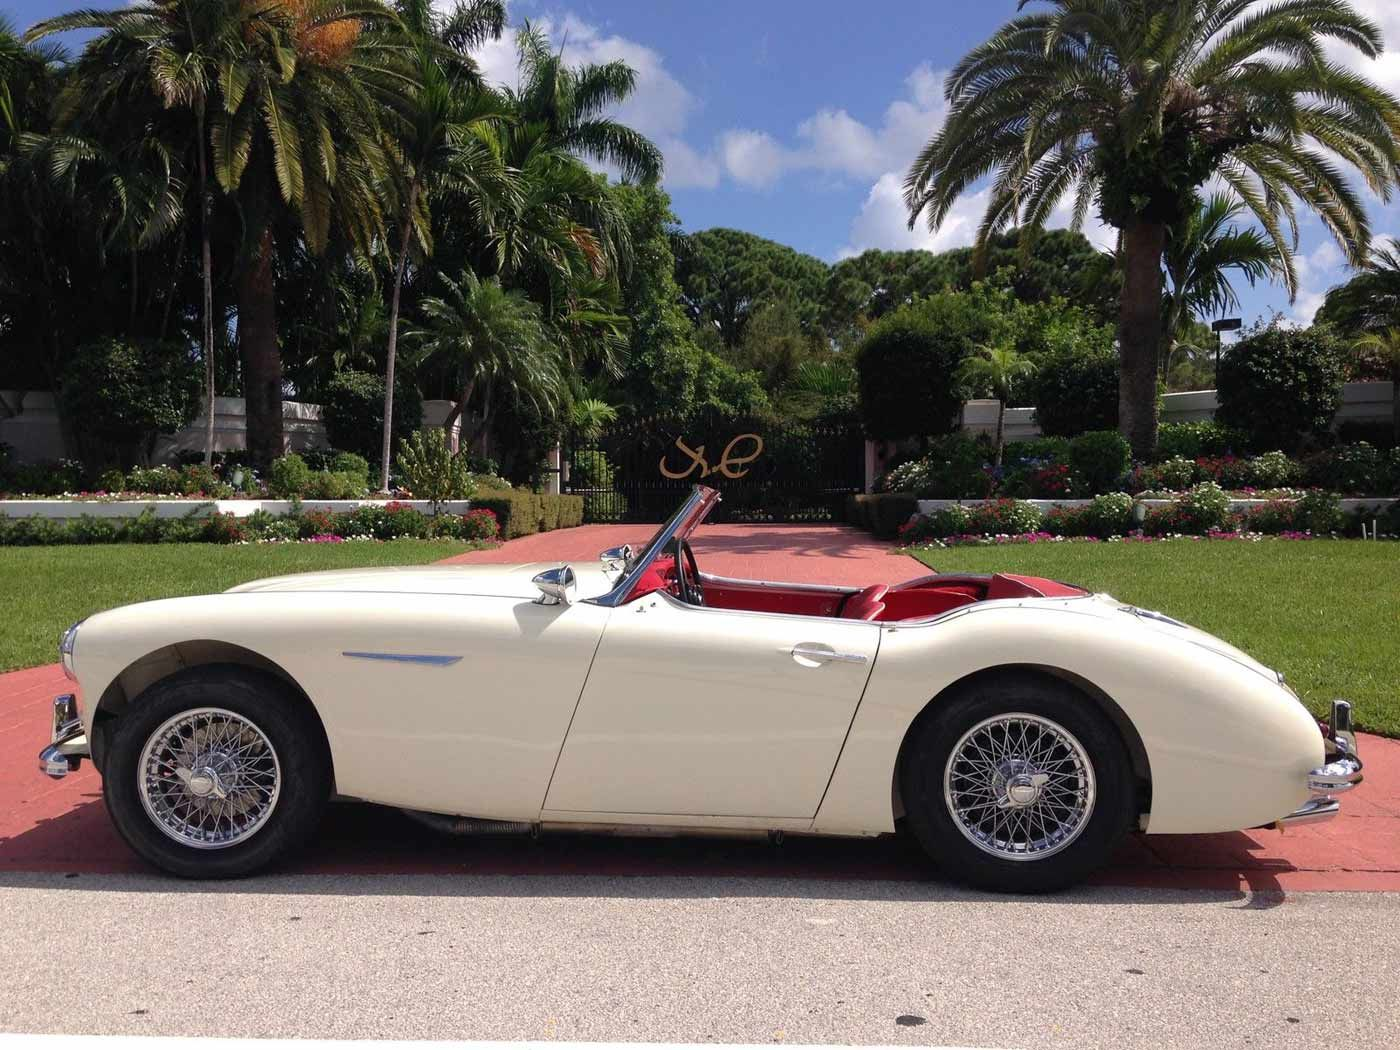 Classic British Roadsters for Every Budget | Austin healey, Cars ...